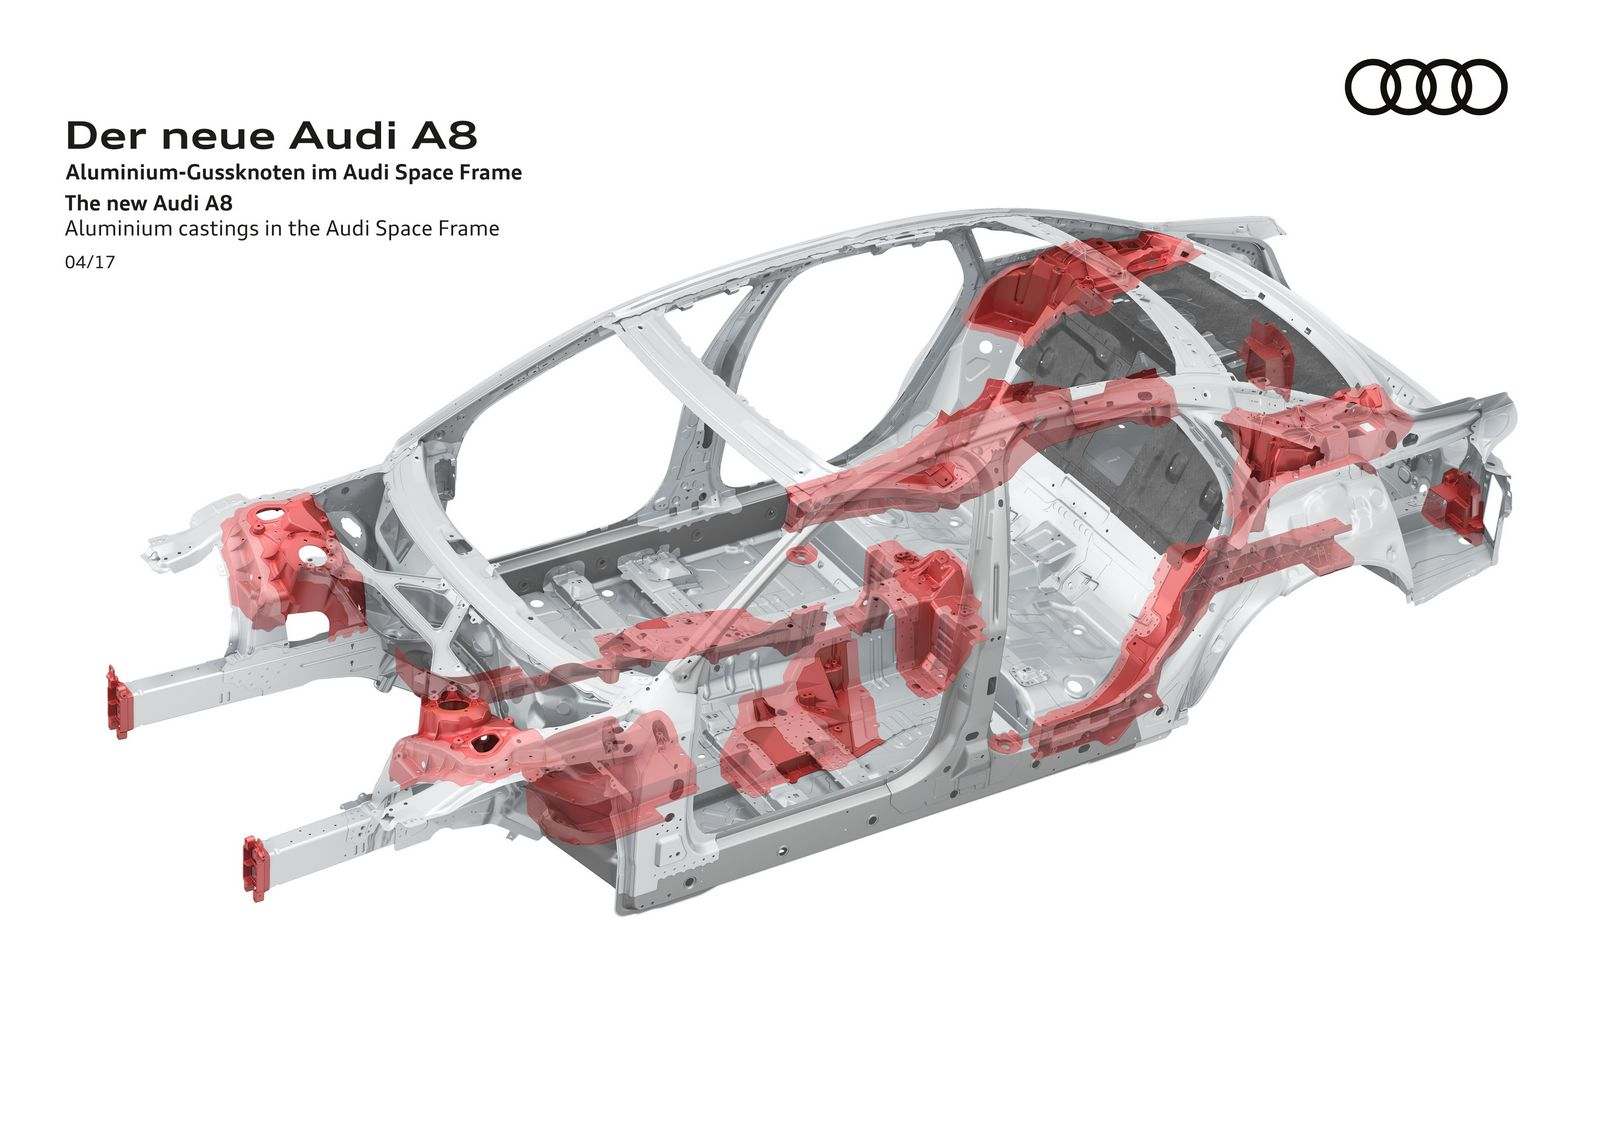 Aluminium castings in the Audi Space Frame